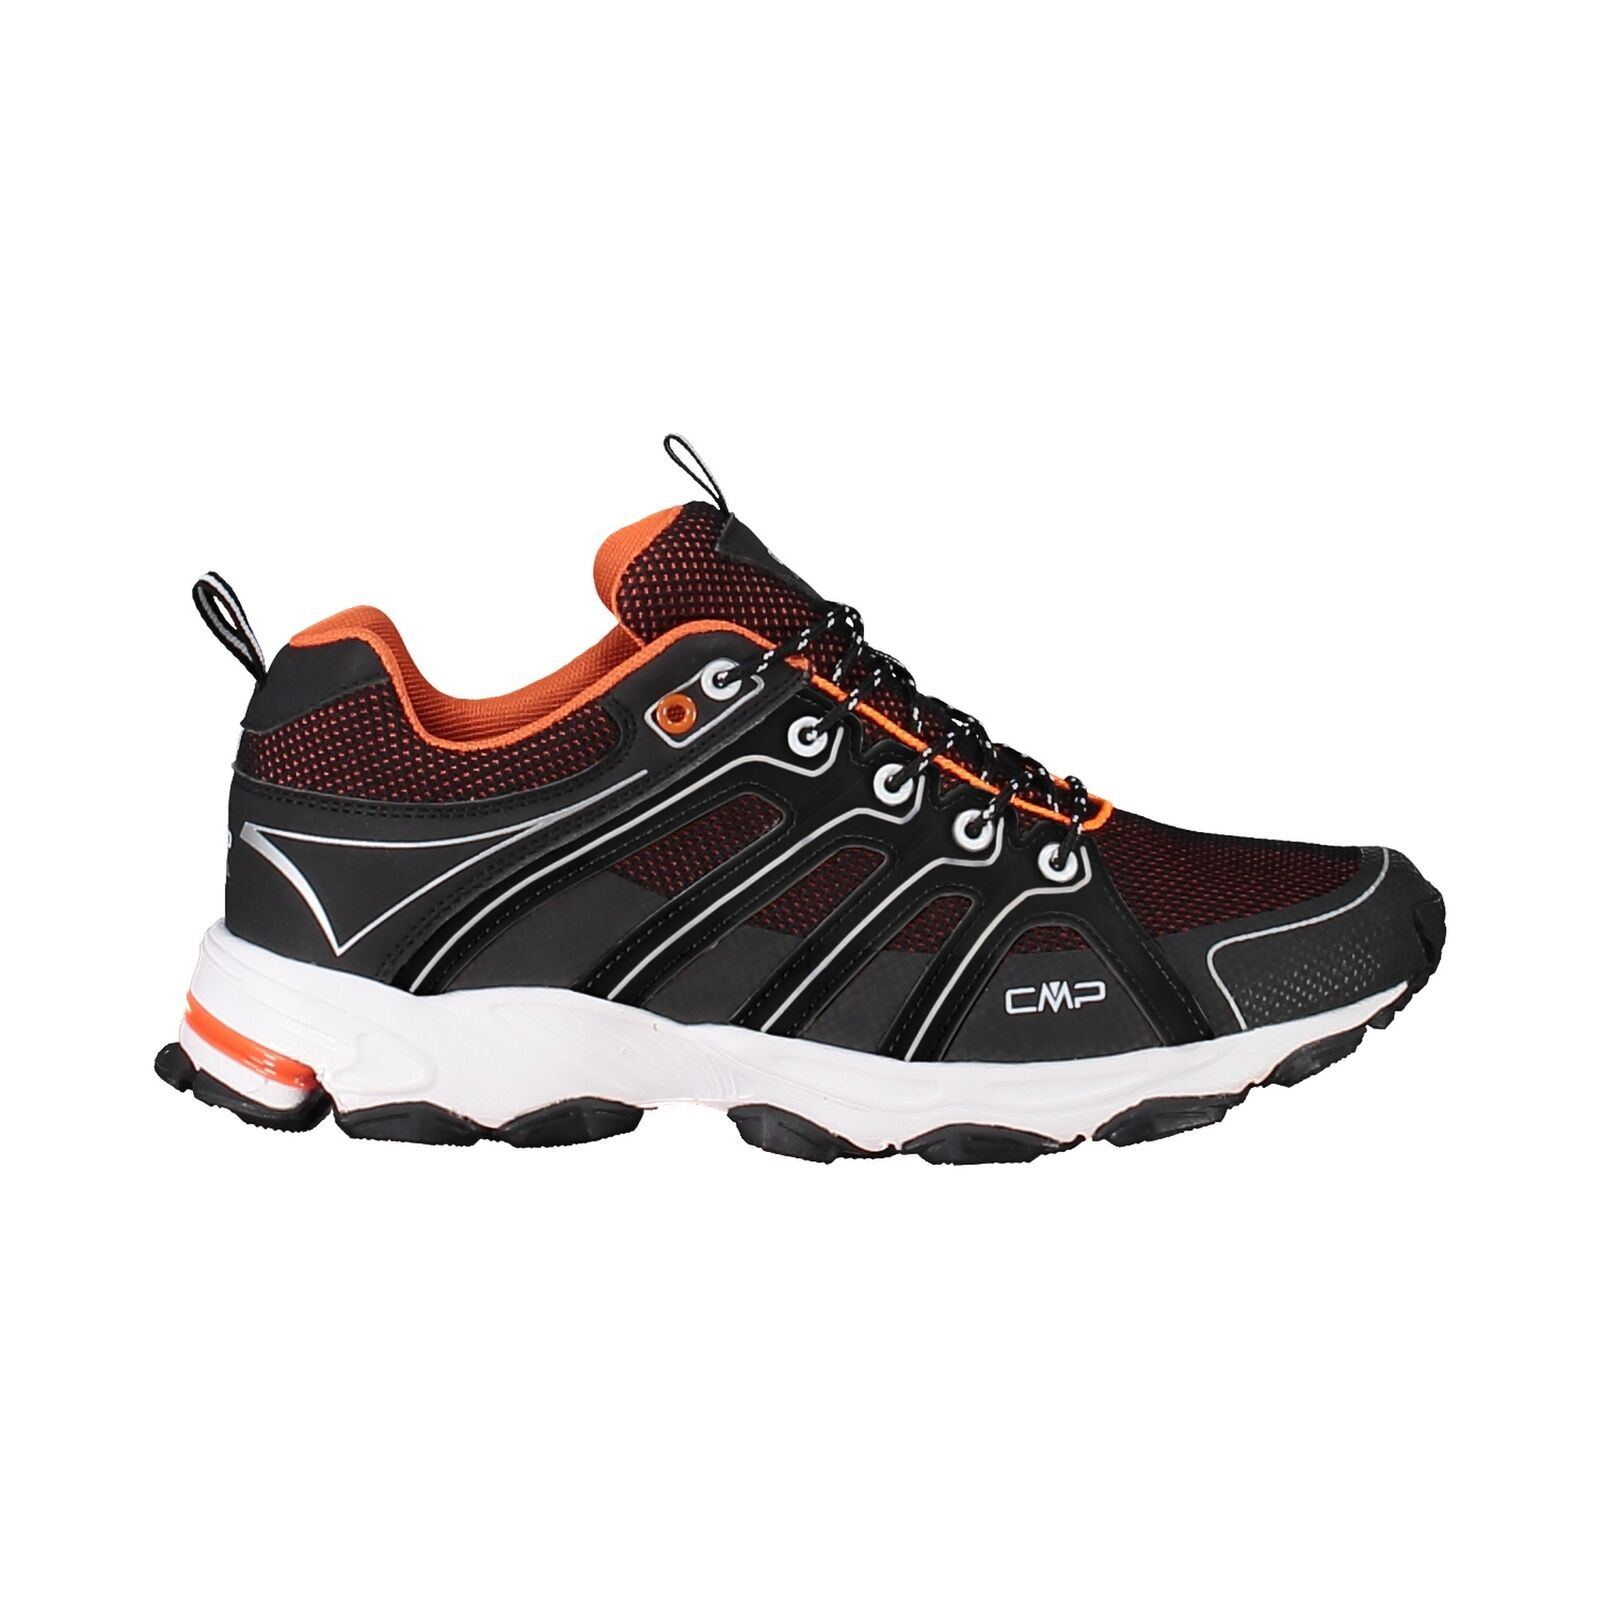 CMP shoes  da Corsa Sport Agena Trail shoes Wp black Pianura Misto  no minimum